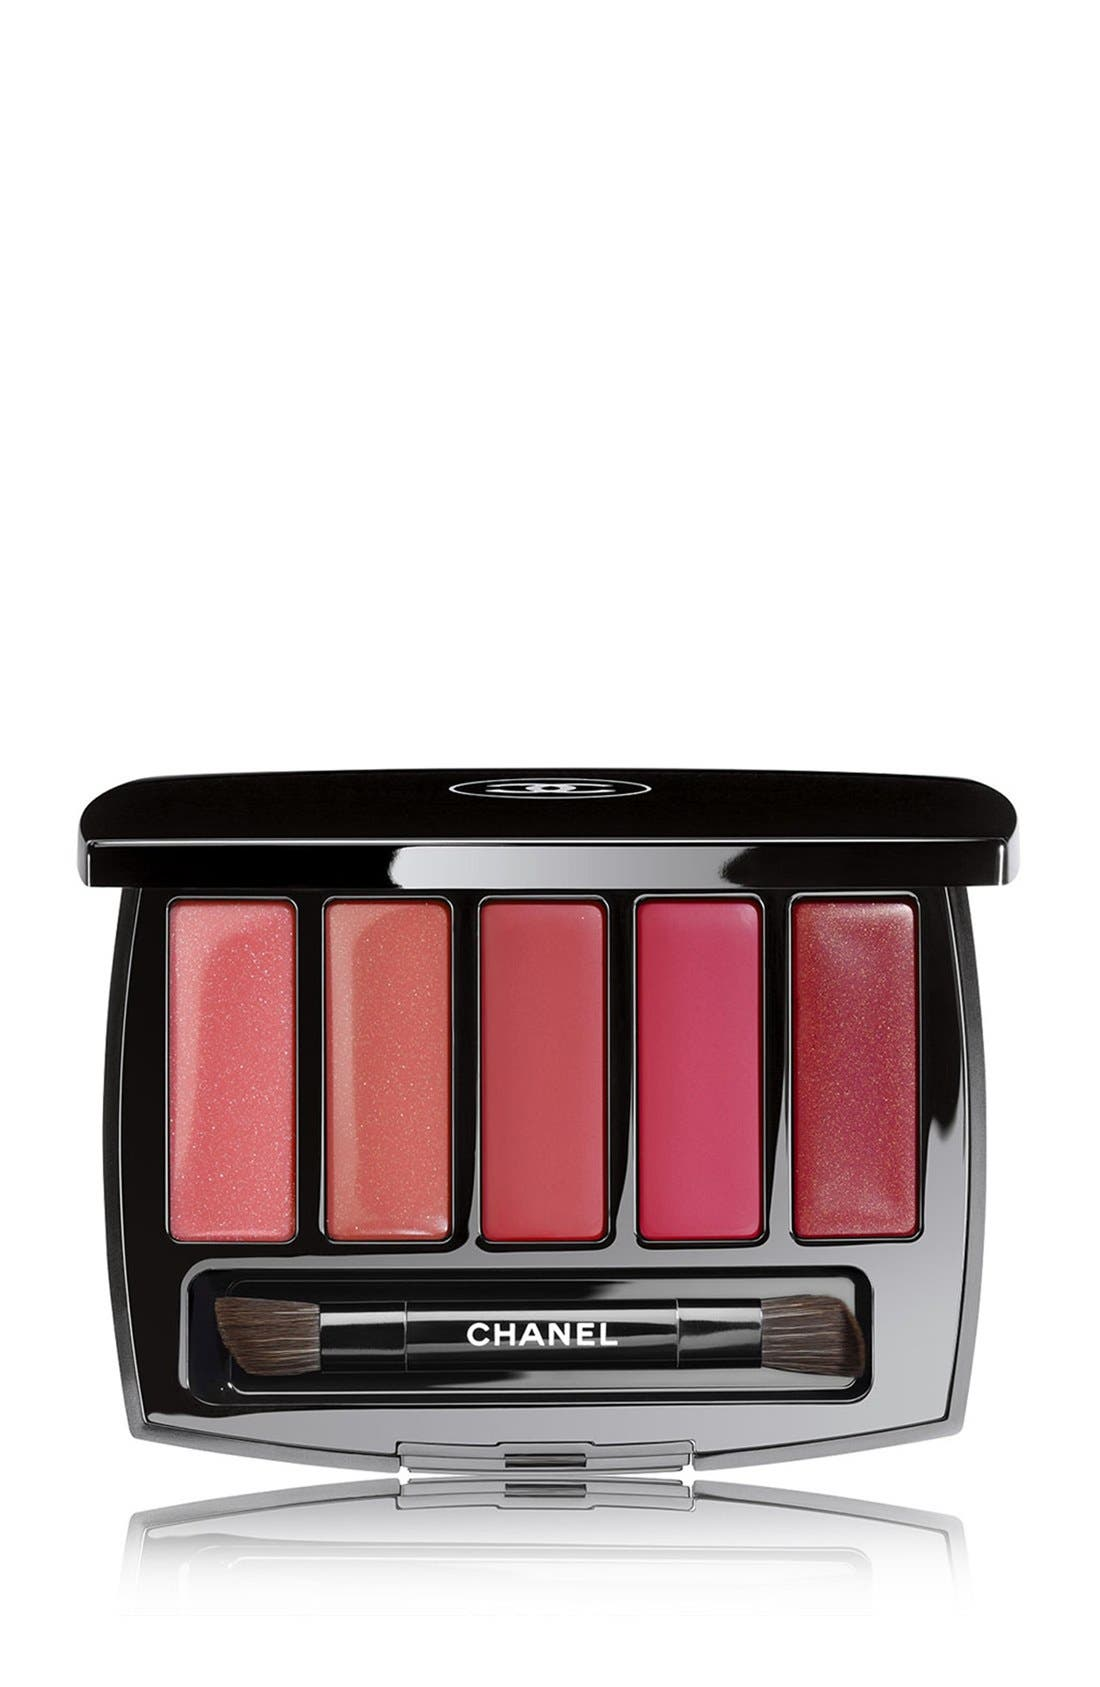 CHANEL,                             HARMONIE LEVRES ARABESQUE<br />Lip Palette,                             Main thumbnail 1, color,                             650